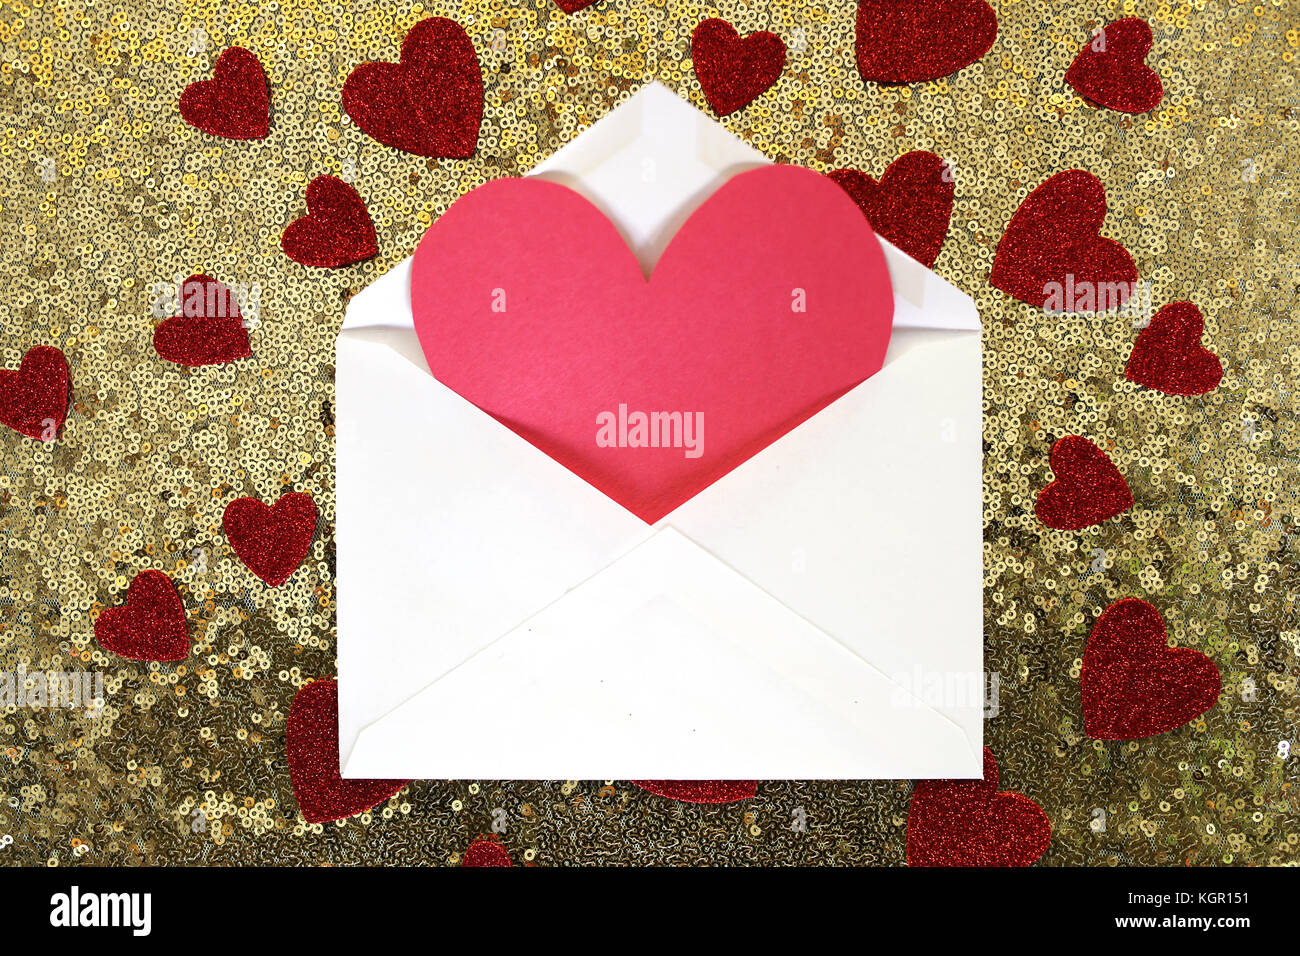 An Envelope With A Blank Red Valentines Day Card In It Is On Gold Sequin Background Surrounded By Sparkly Heart Confetti